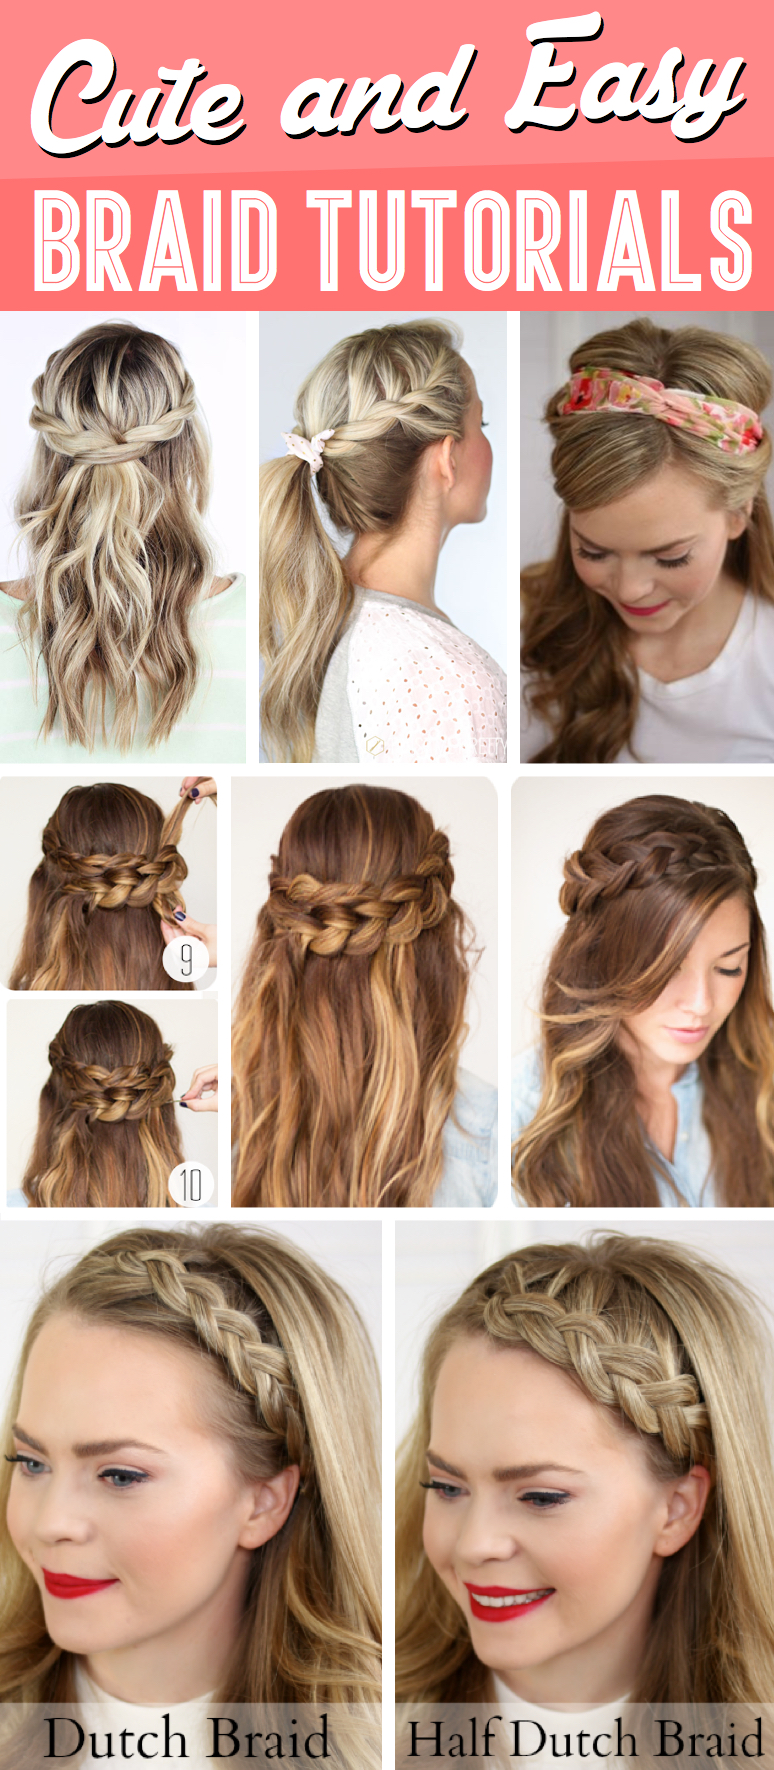 30 cute and easy braid tutorials that are perfect for any occasion 30 cute and easy braid tutorials that are perfect for any occasion solutioingenieria Images